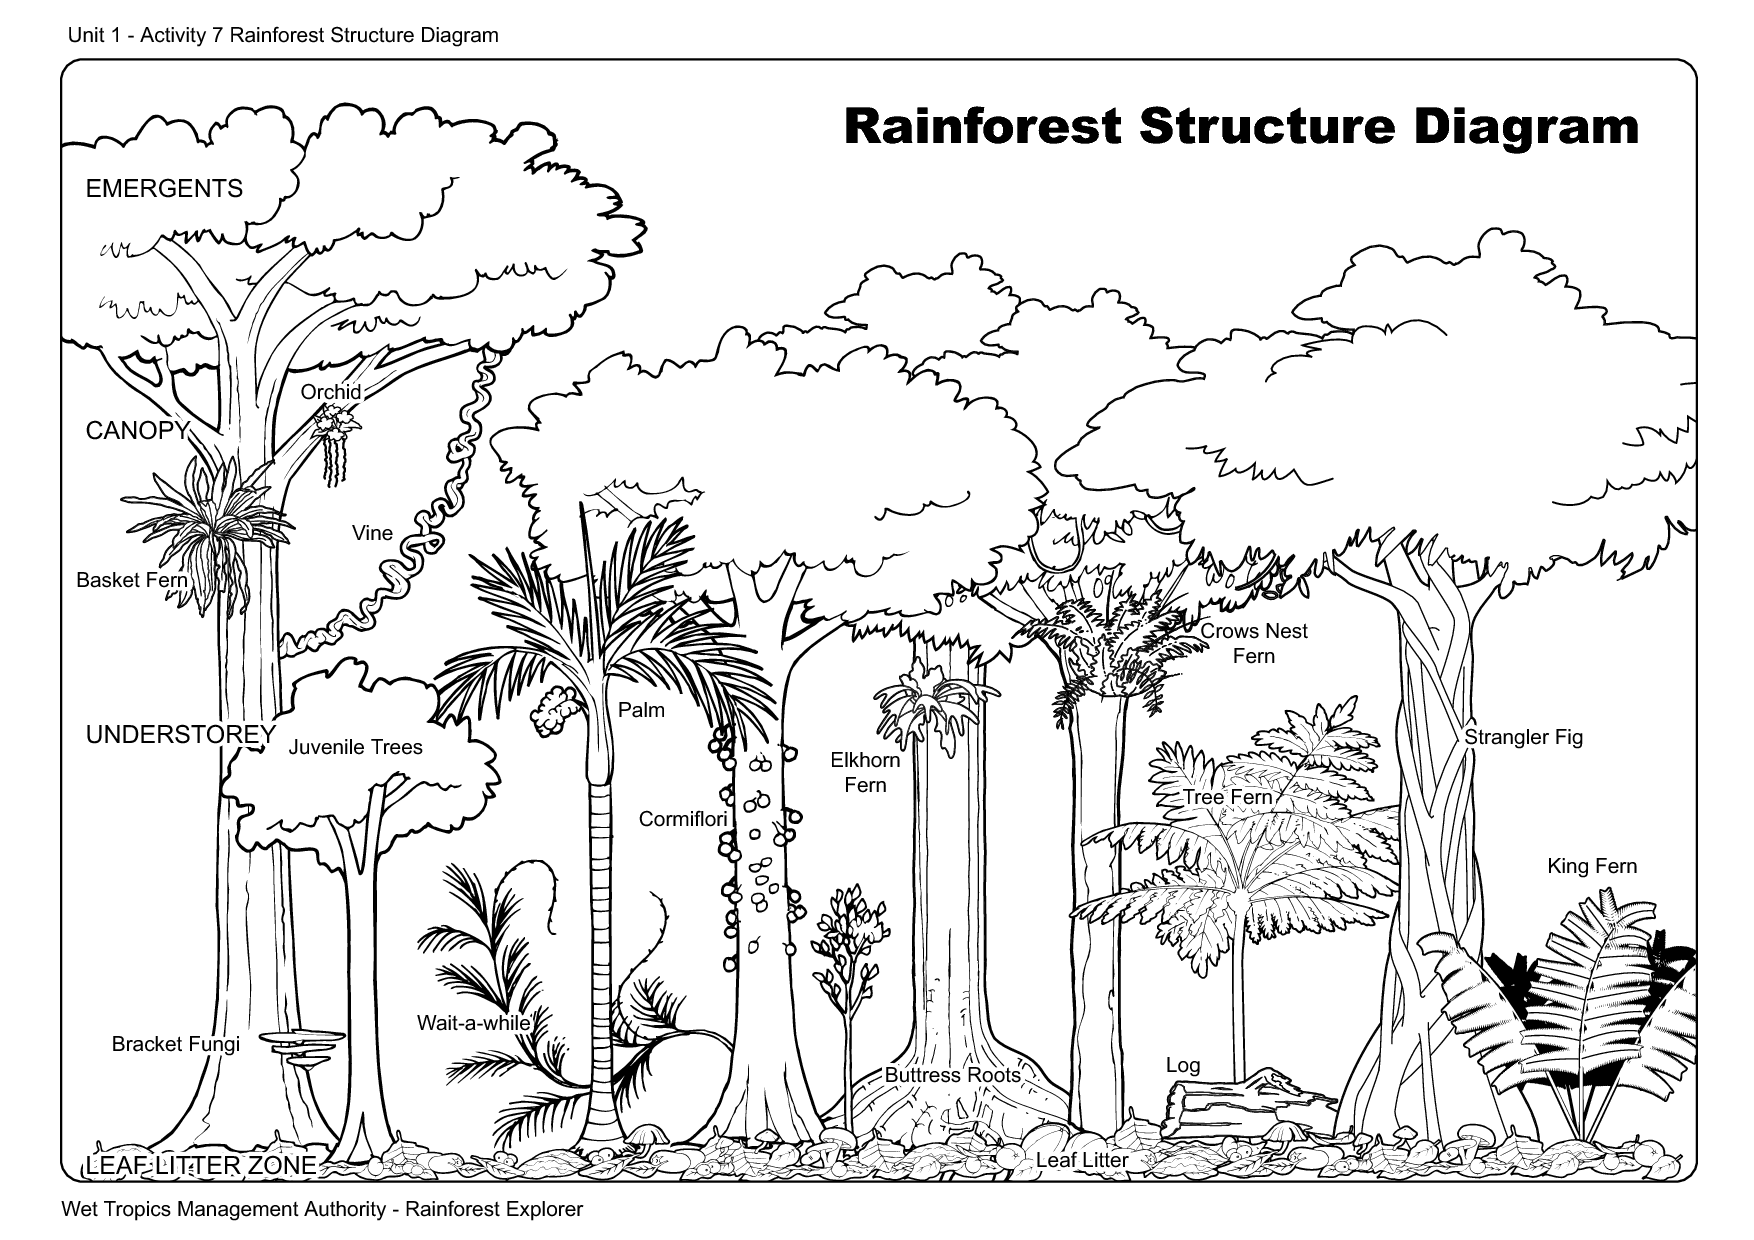 worksheet Tropical Rainforest Worksheet tropical trees worksheet rainforest structure diagram and diagram